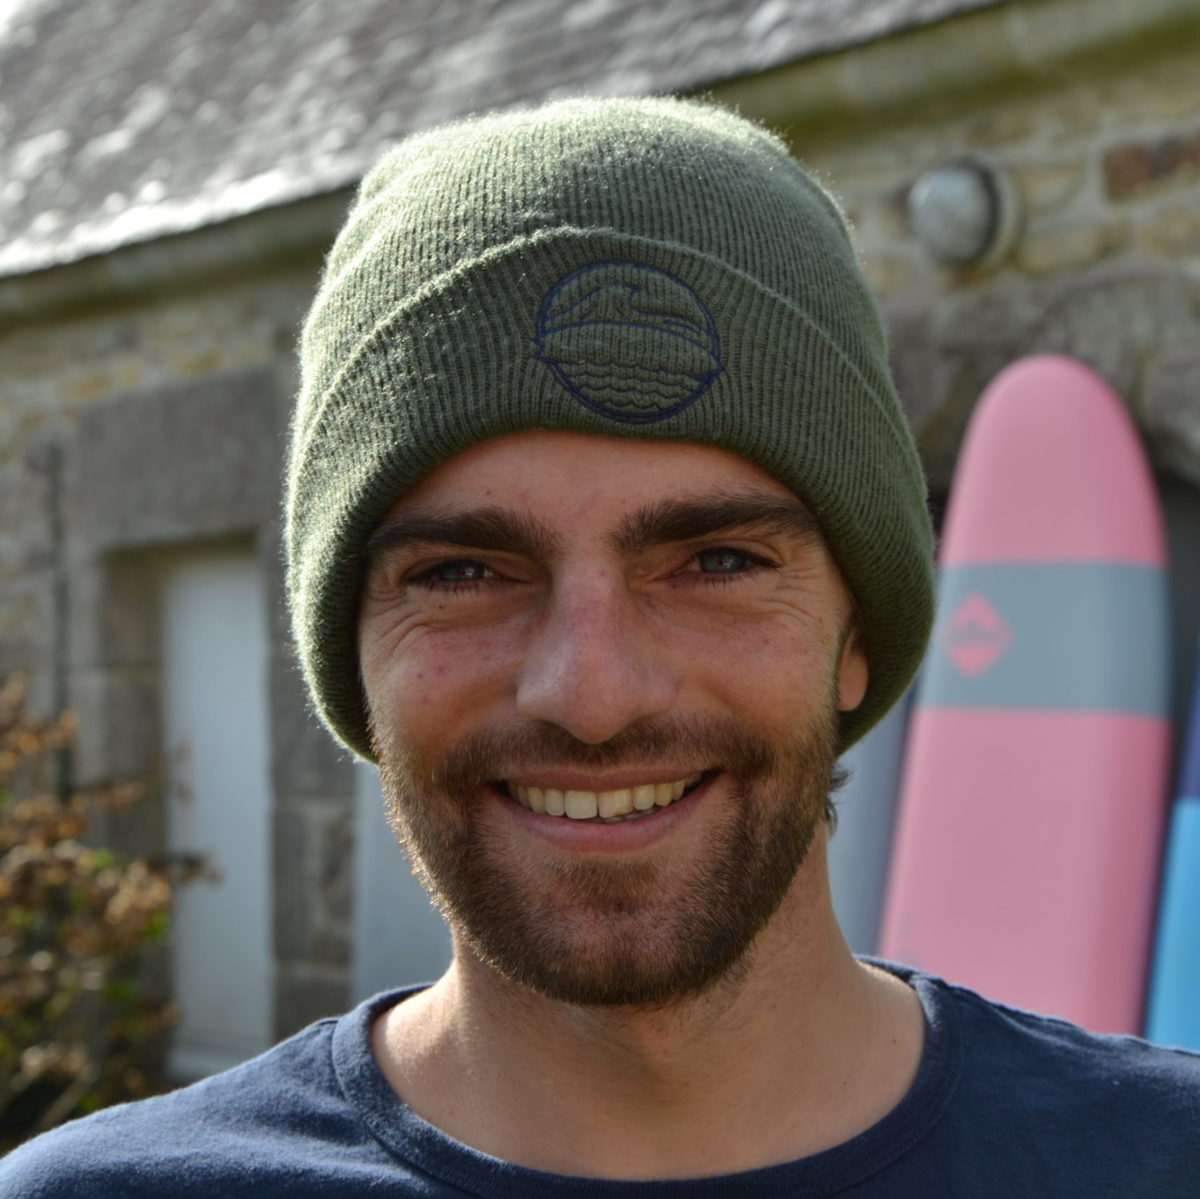 https://www.ligue-bretagne-surf.bzh/wp-content/uploads/2020/04/Rémi-Wattinne-Heol-Surf-School-8-scaled-e1587212690846-1200x1199.jpg